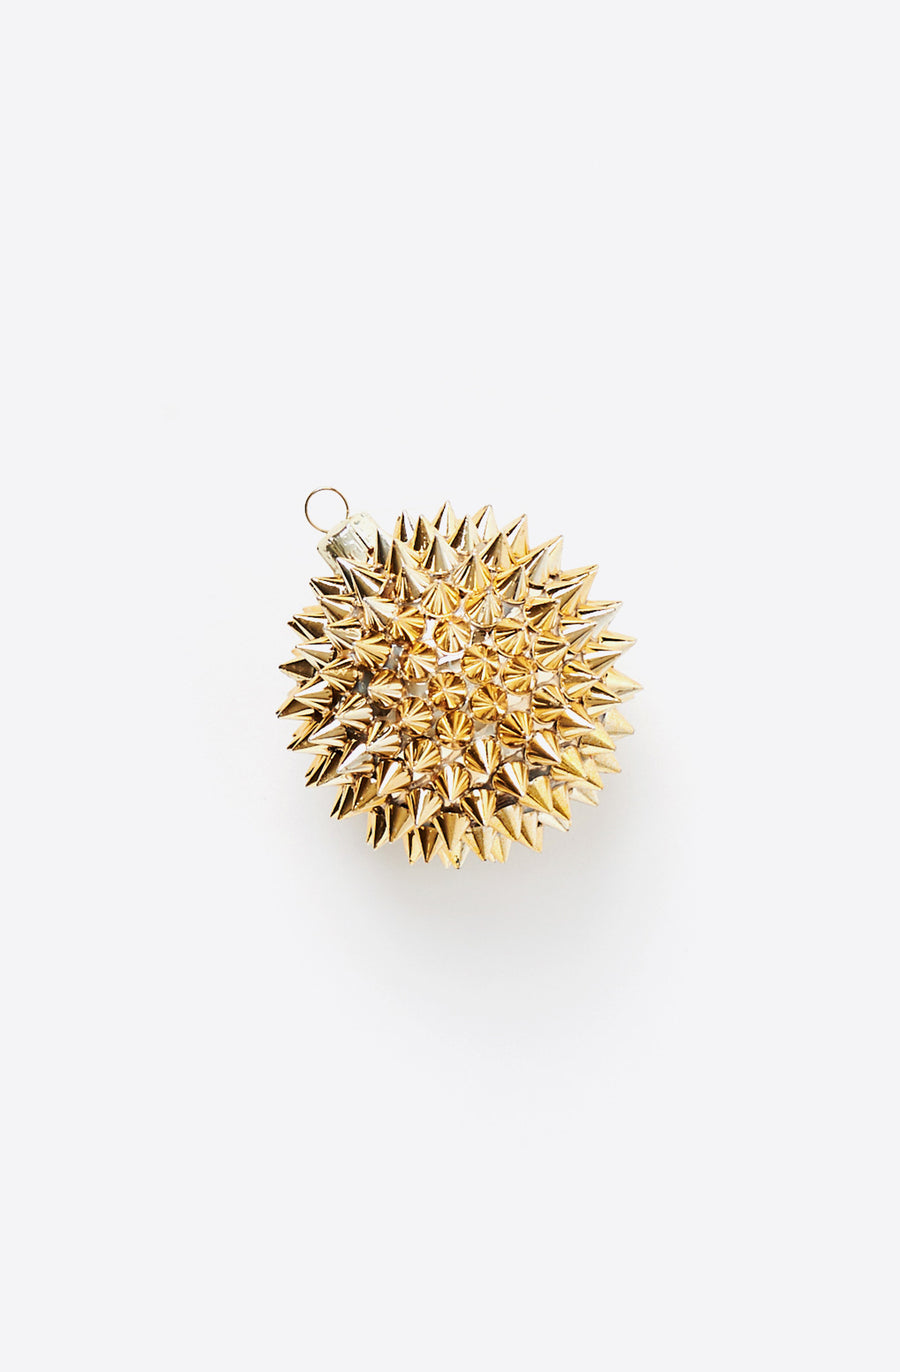 Spiked Gold Ornament-multi